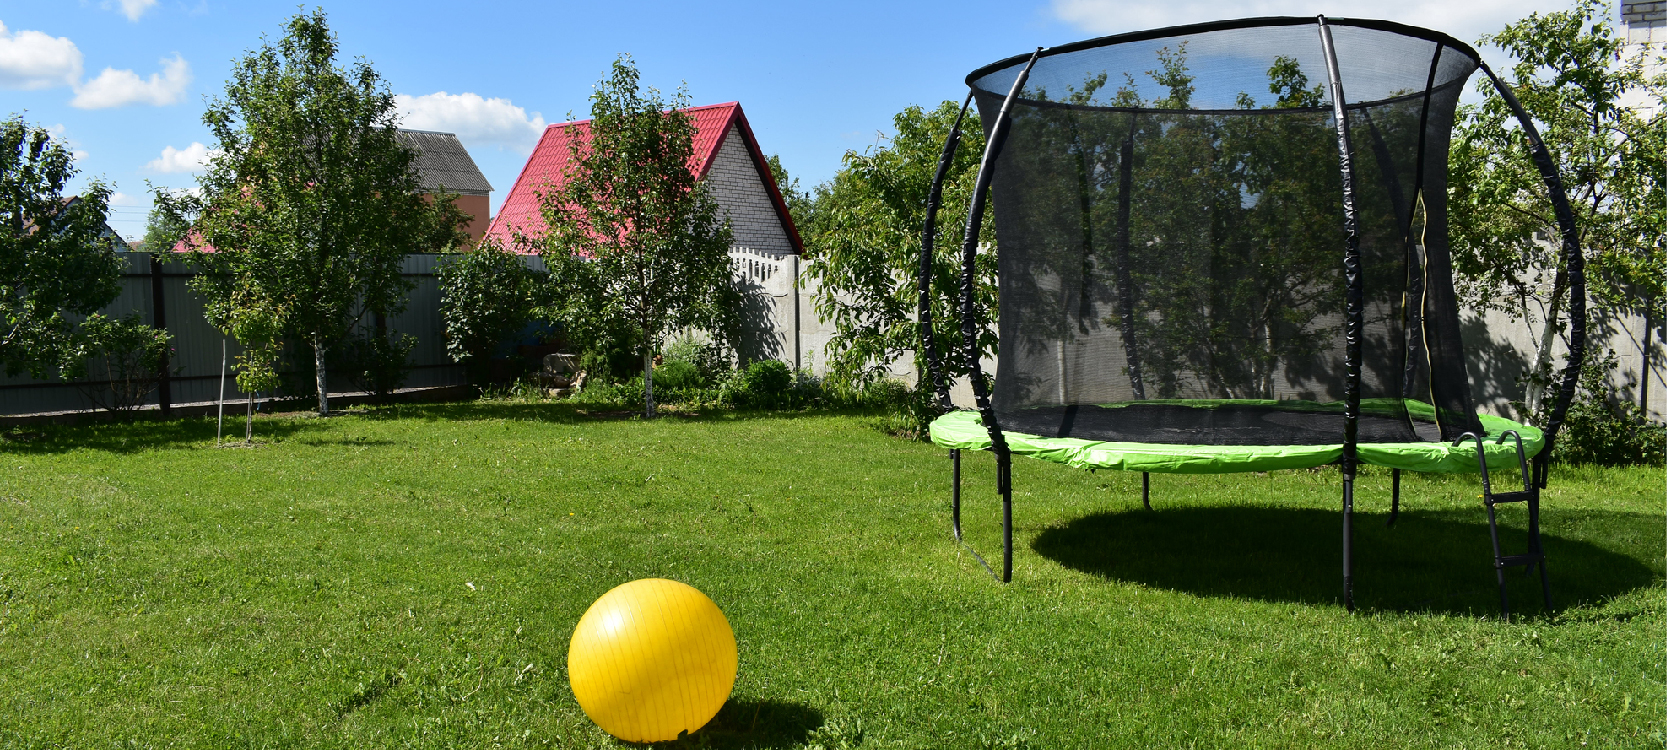 a trampoline with a ball in the warm outdoor backyard